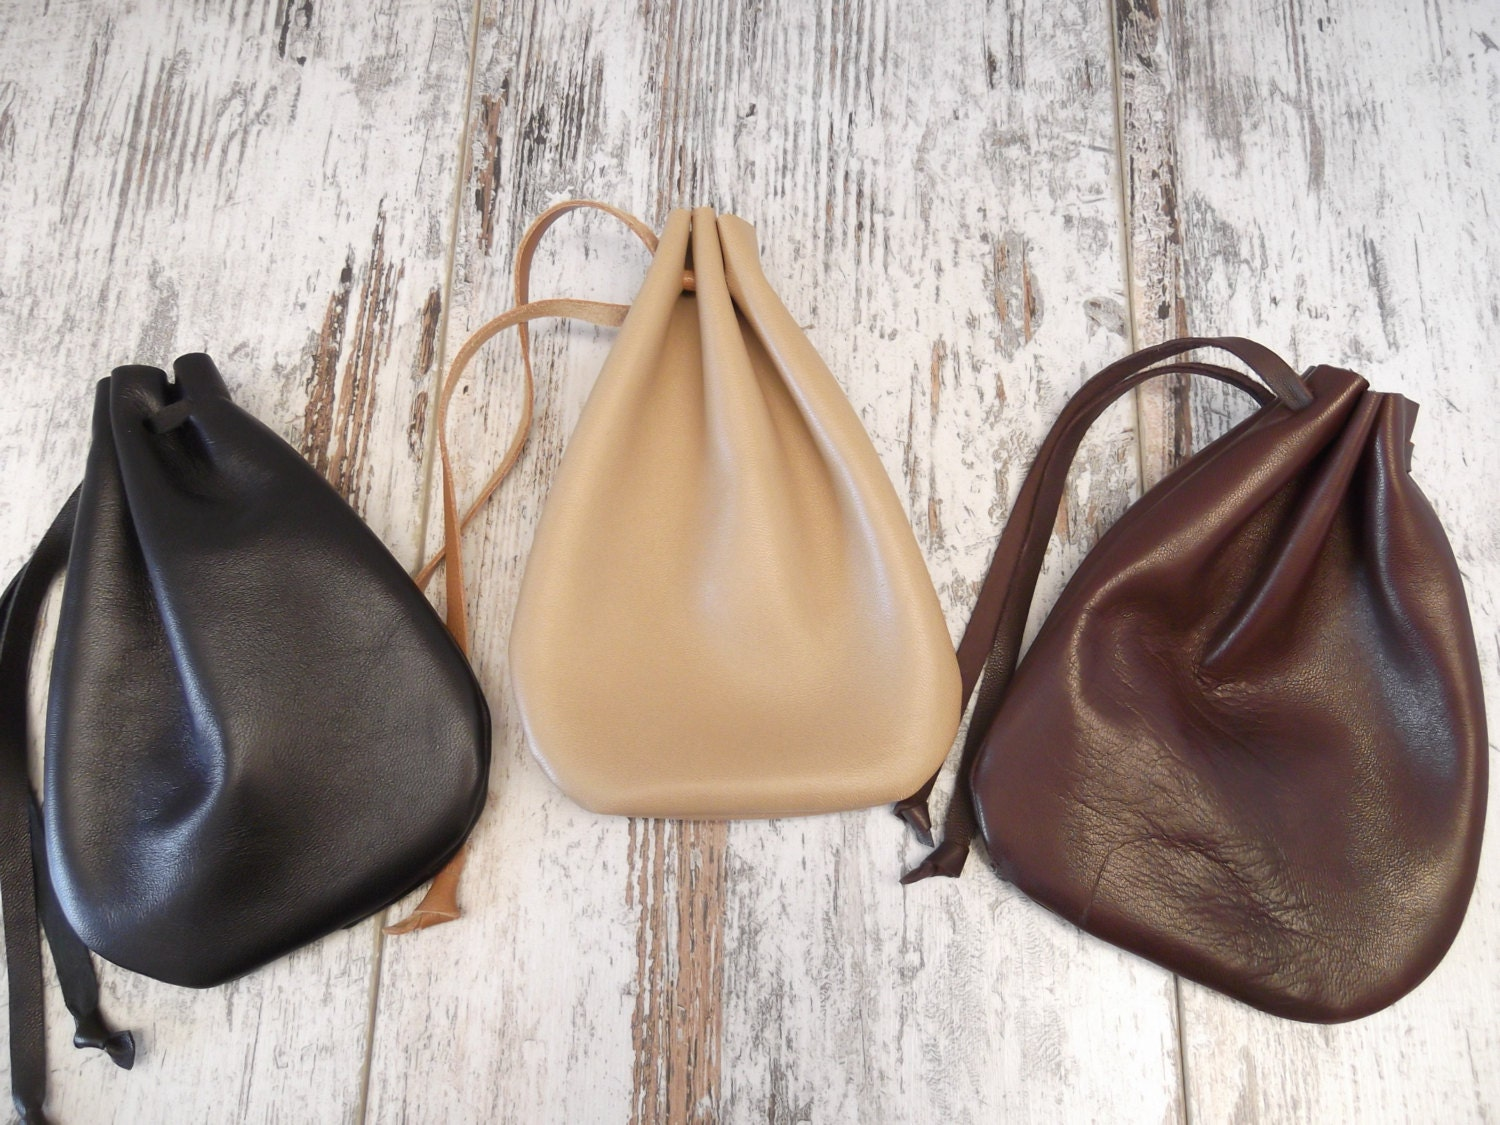 Leather drawstring pouch drawstring bag medicine pouch for Drawstring jewelry bag pattern